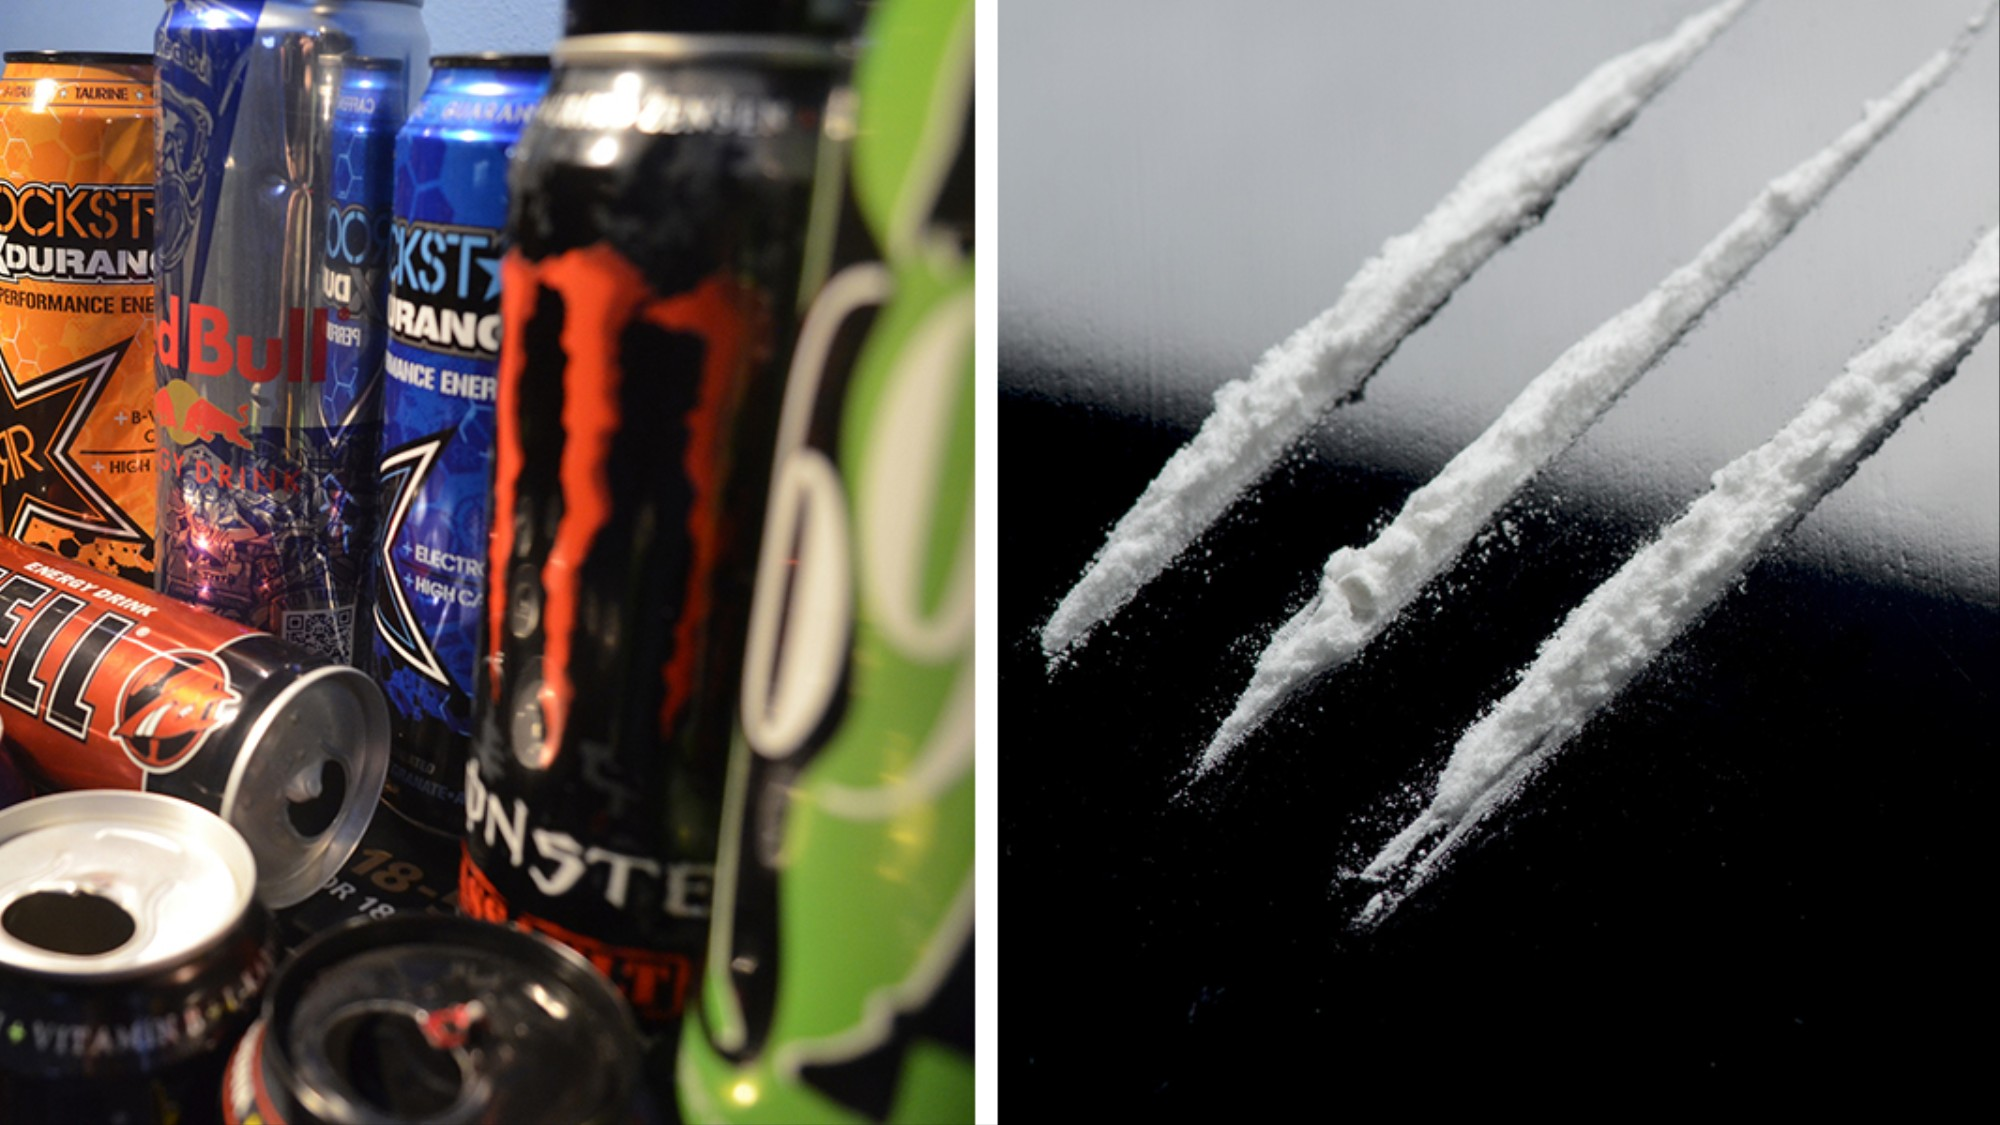 Study Suggests Link Between Energy Drinks and Cocaine Use - VICE